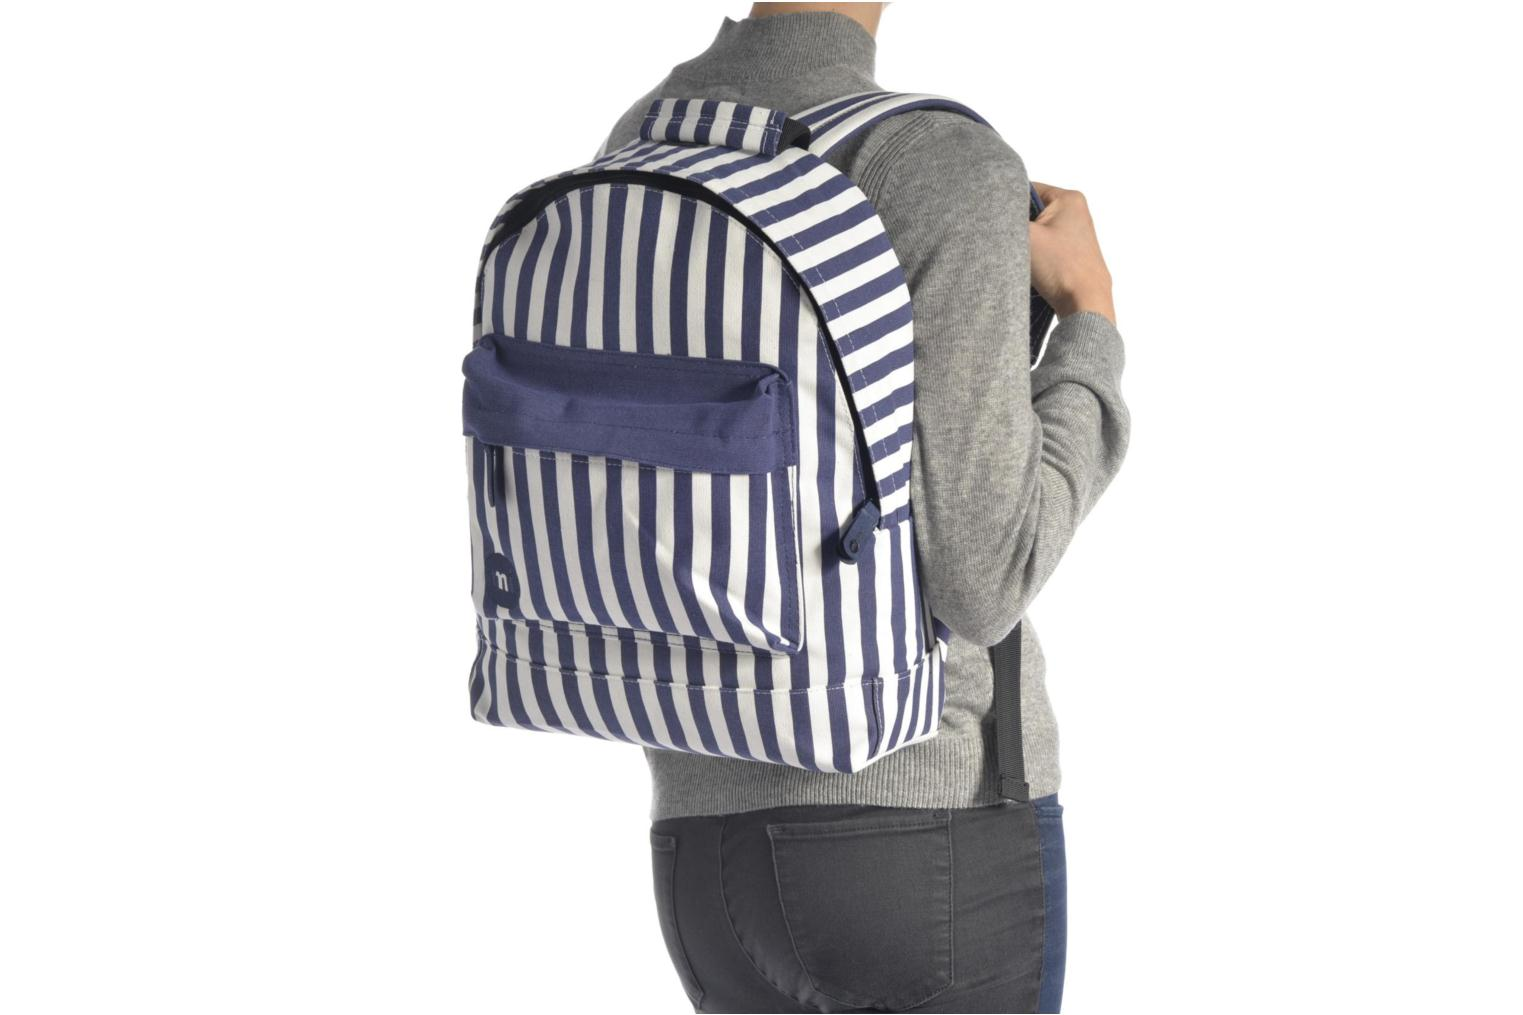 Premium Seaside Stripe Backpack Seaside